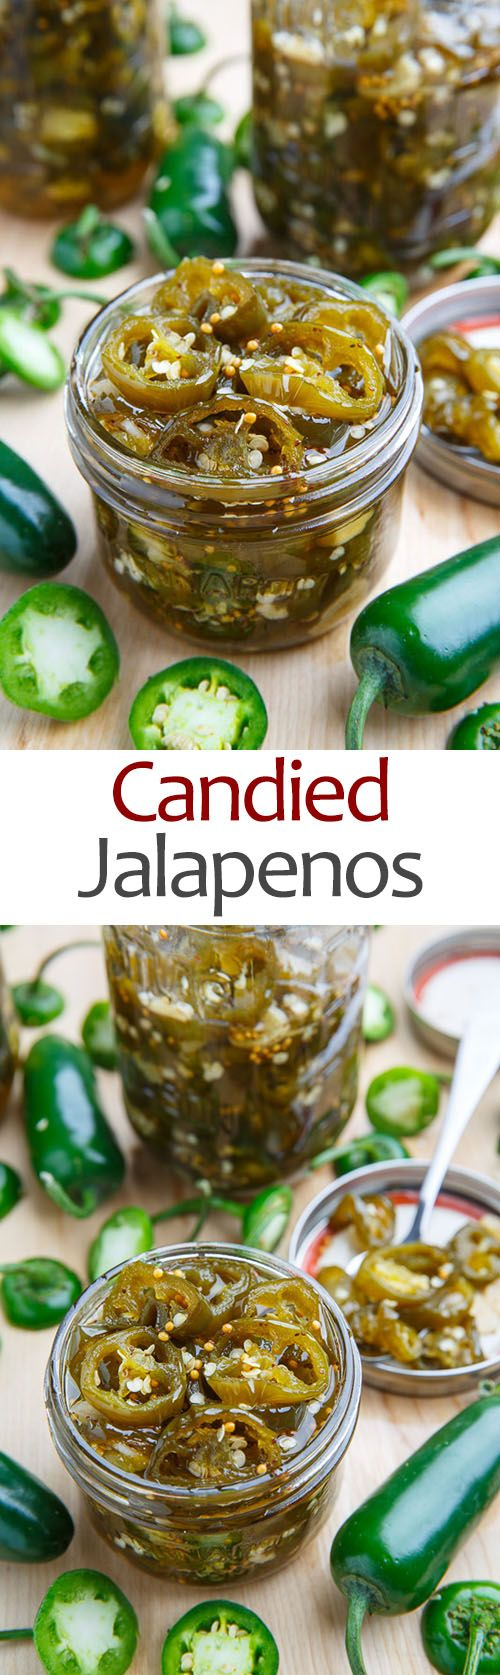 Candied Jalapenos                                                                                                                                                                                 More